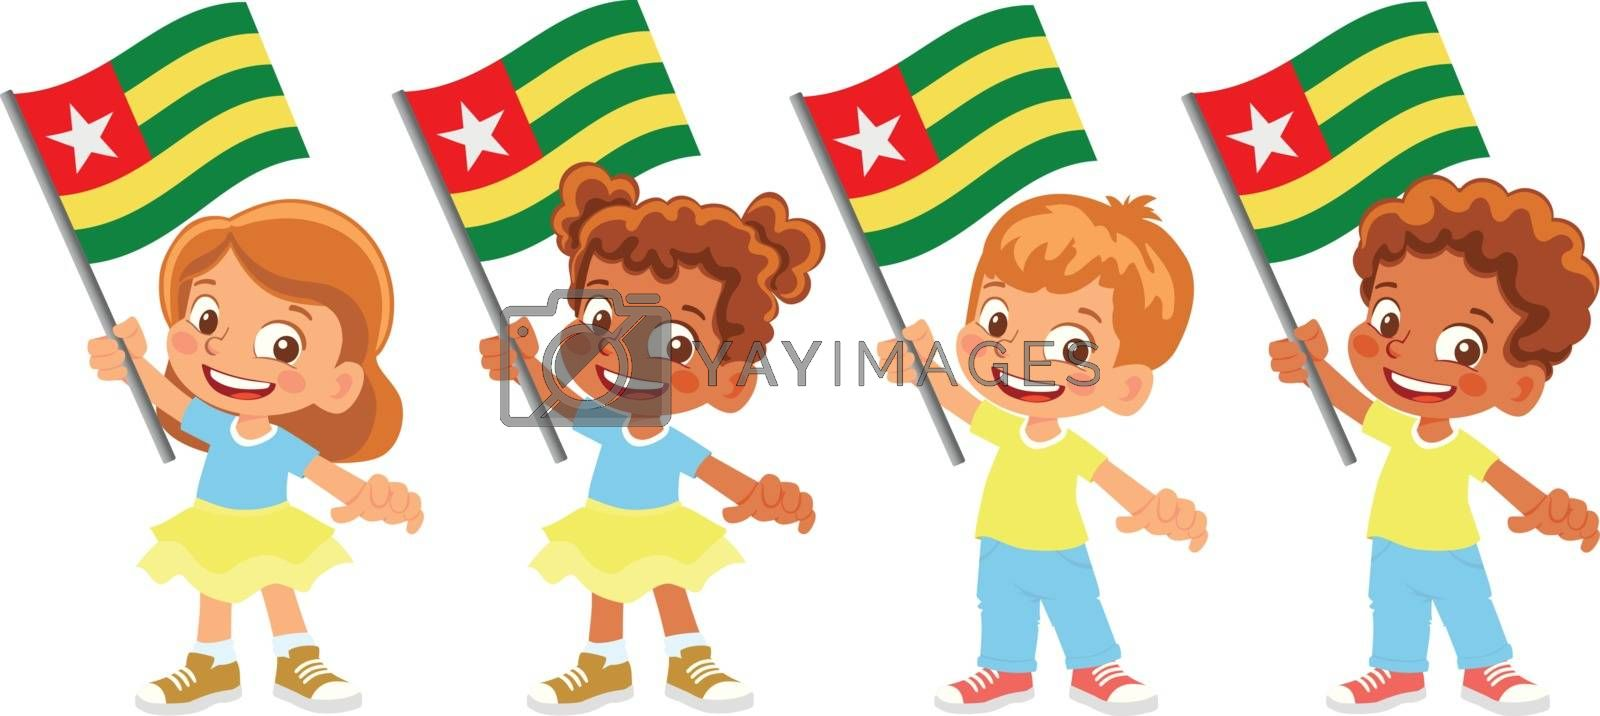 Togo flag in hand set by Visual-Content